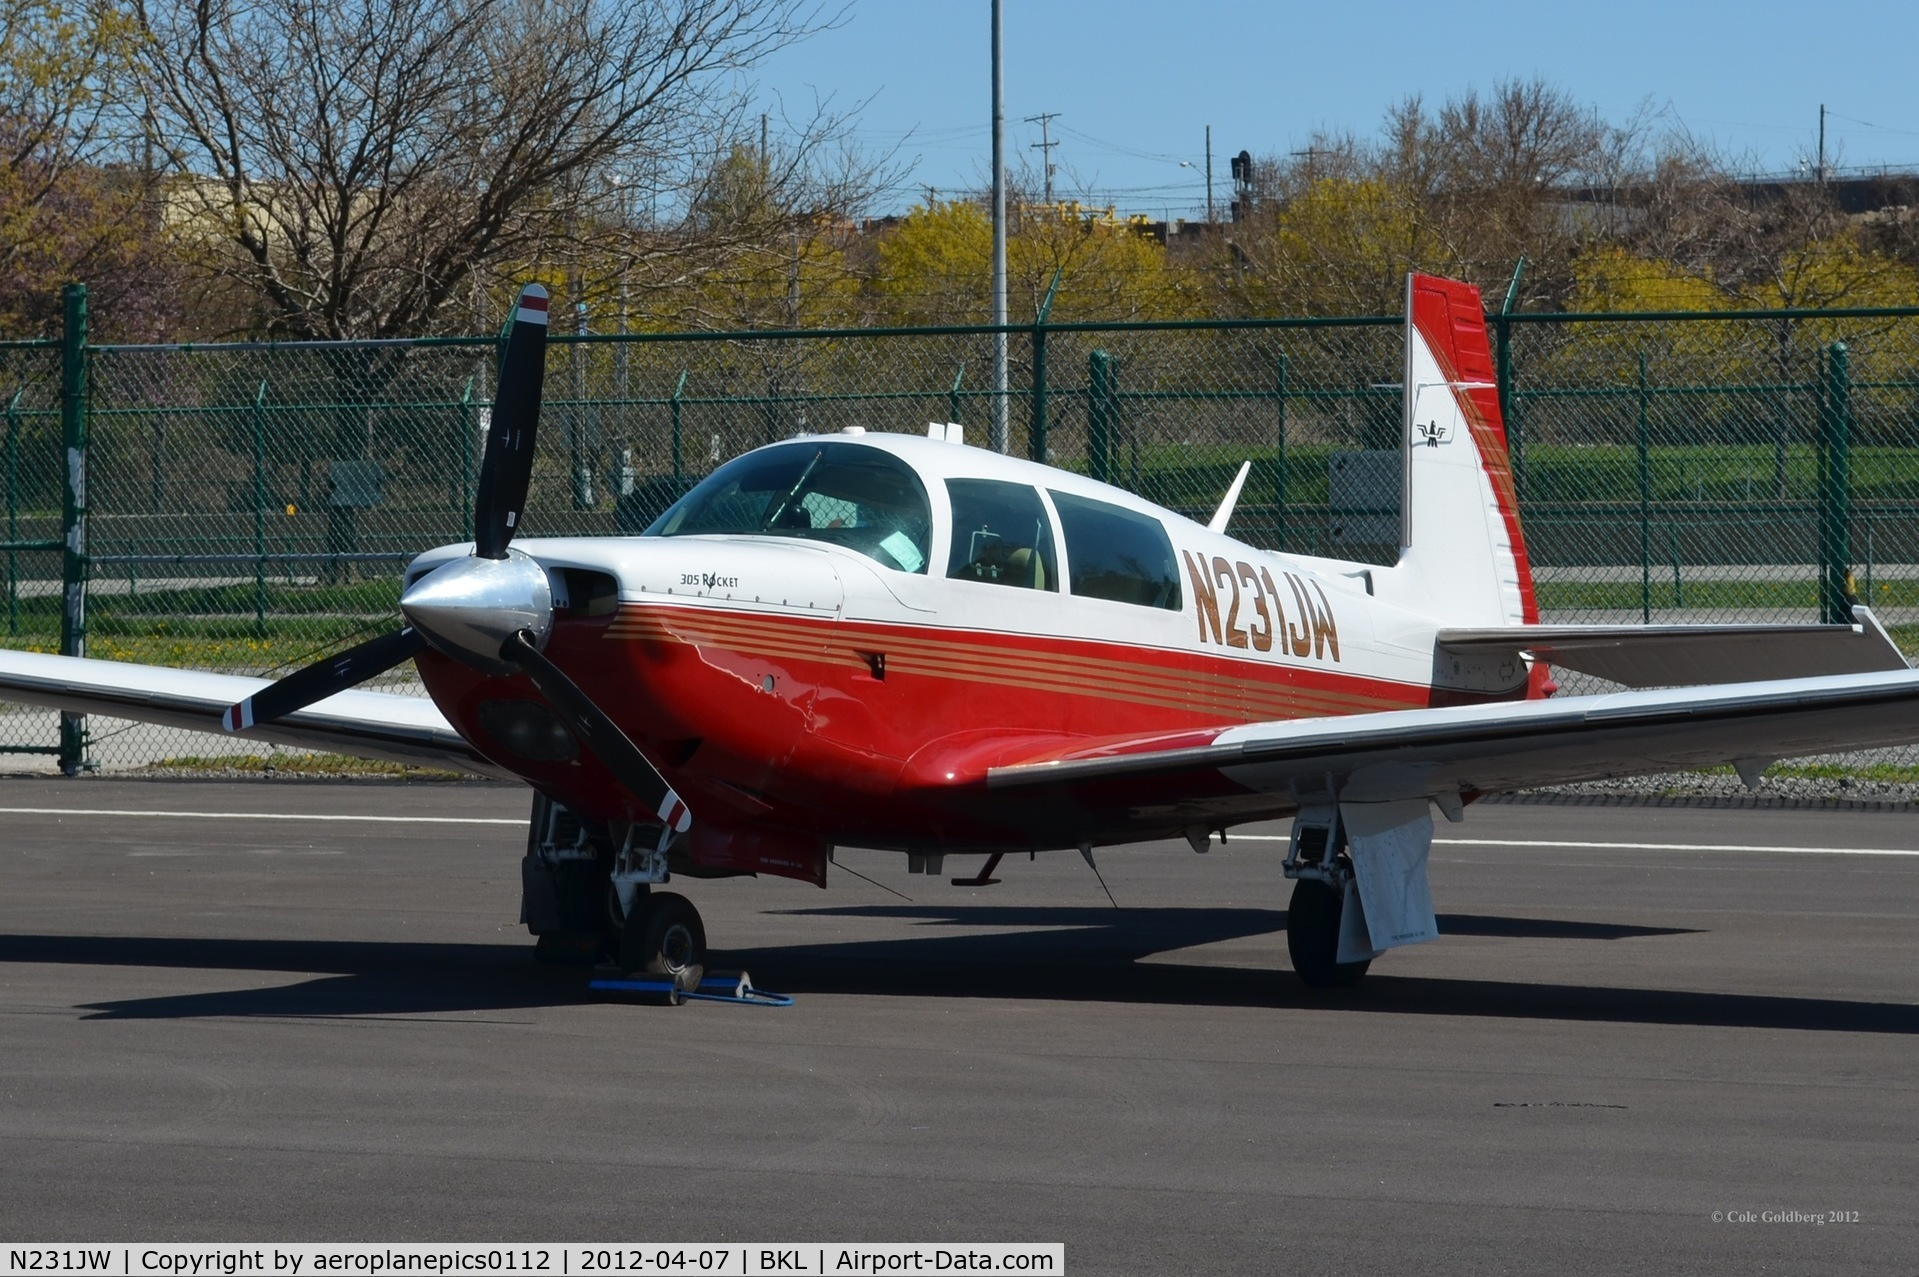 N231JW, 1979 Mooney Aircraft Corp. M20K C/N 25-0031, N231JW seen at KBKL in red paint.